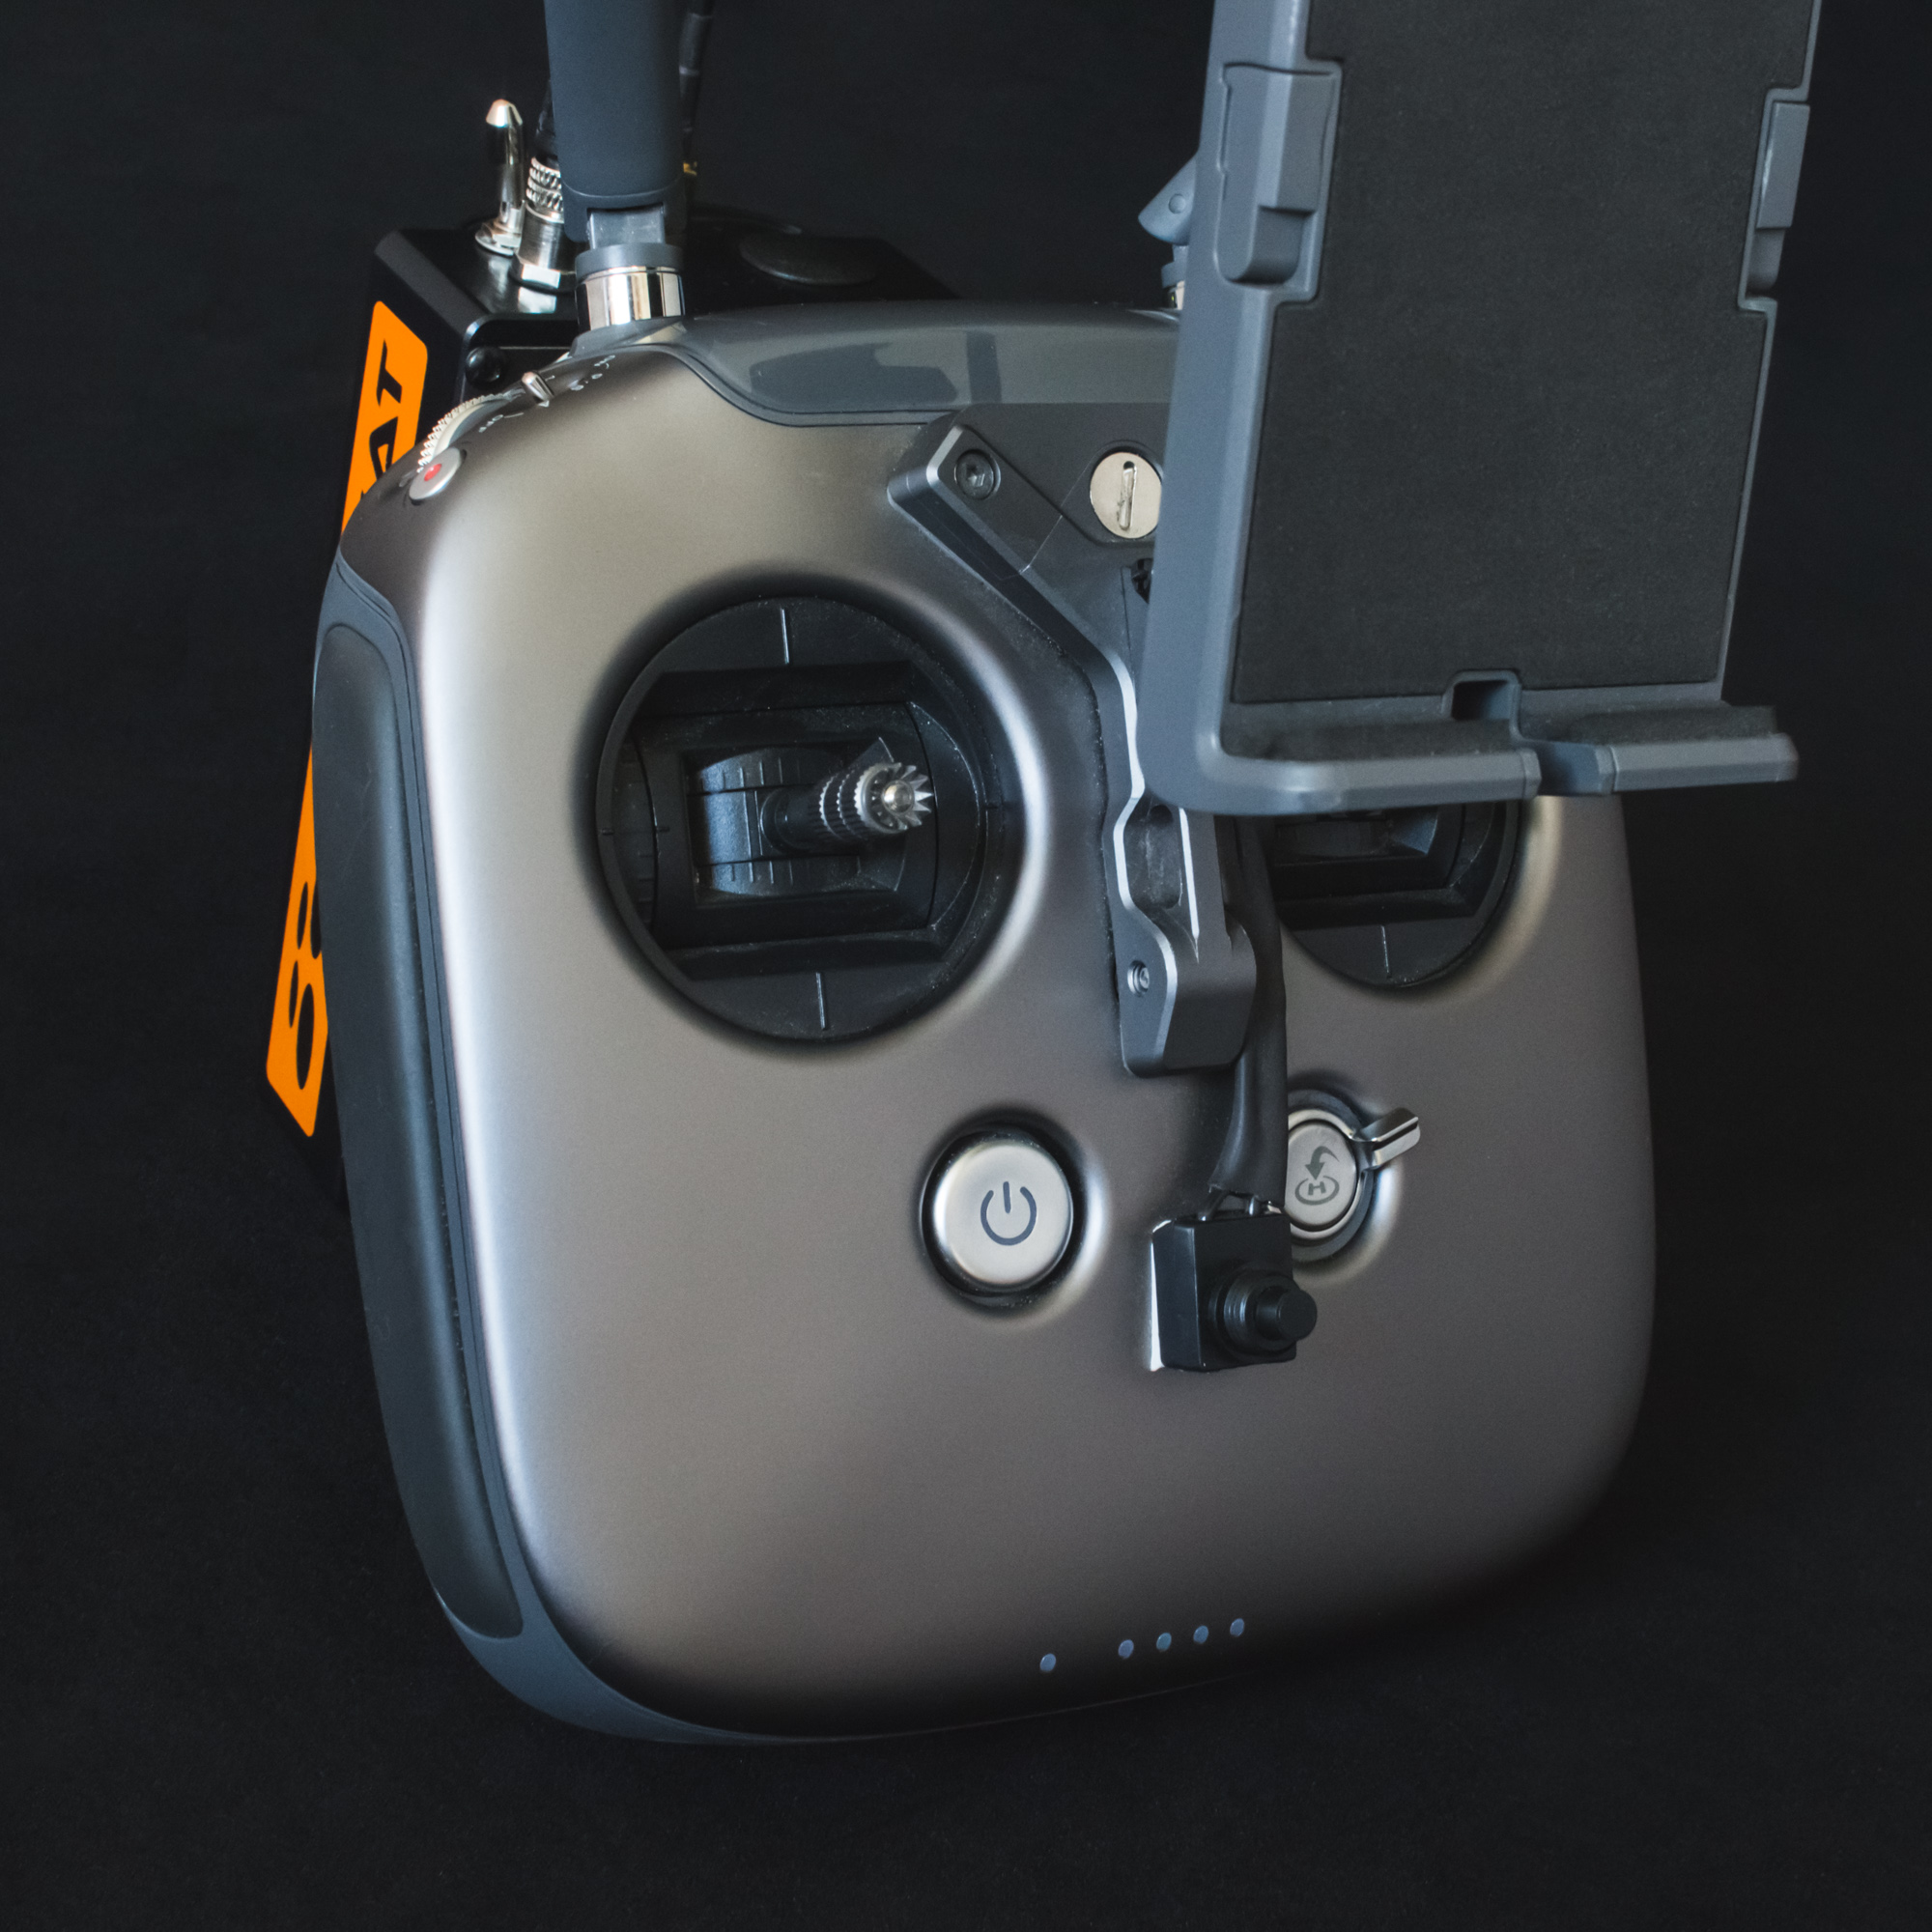 Eject button within reach - The eject button is within immediate reach, under the pilot's thumb.For multiple RC controllers, add one additional external button for each controller, and one additional receiver for each copter.